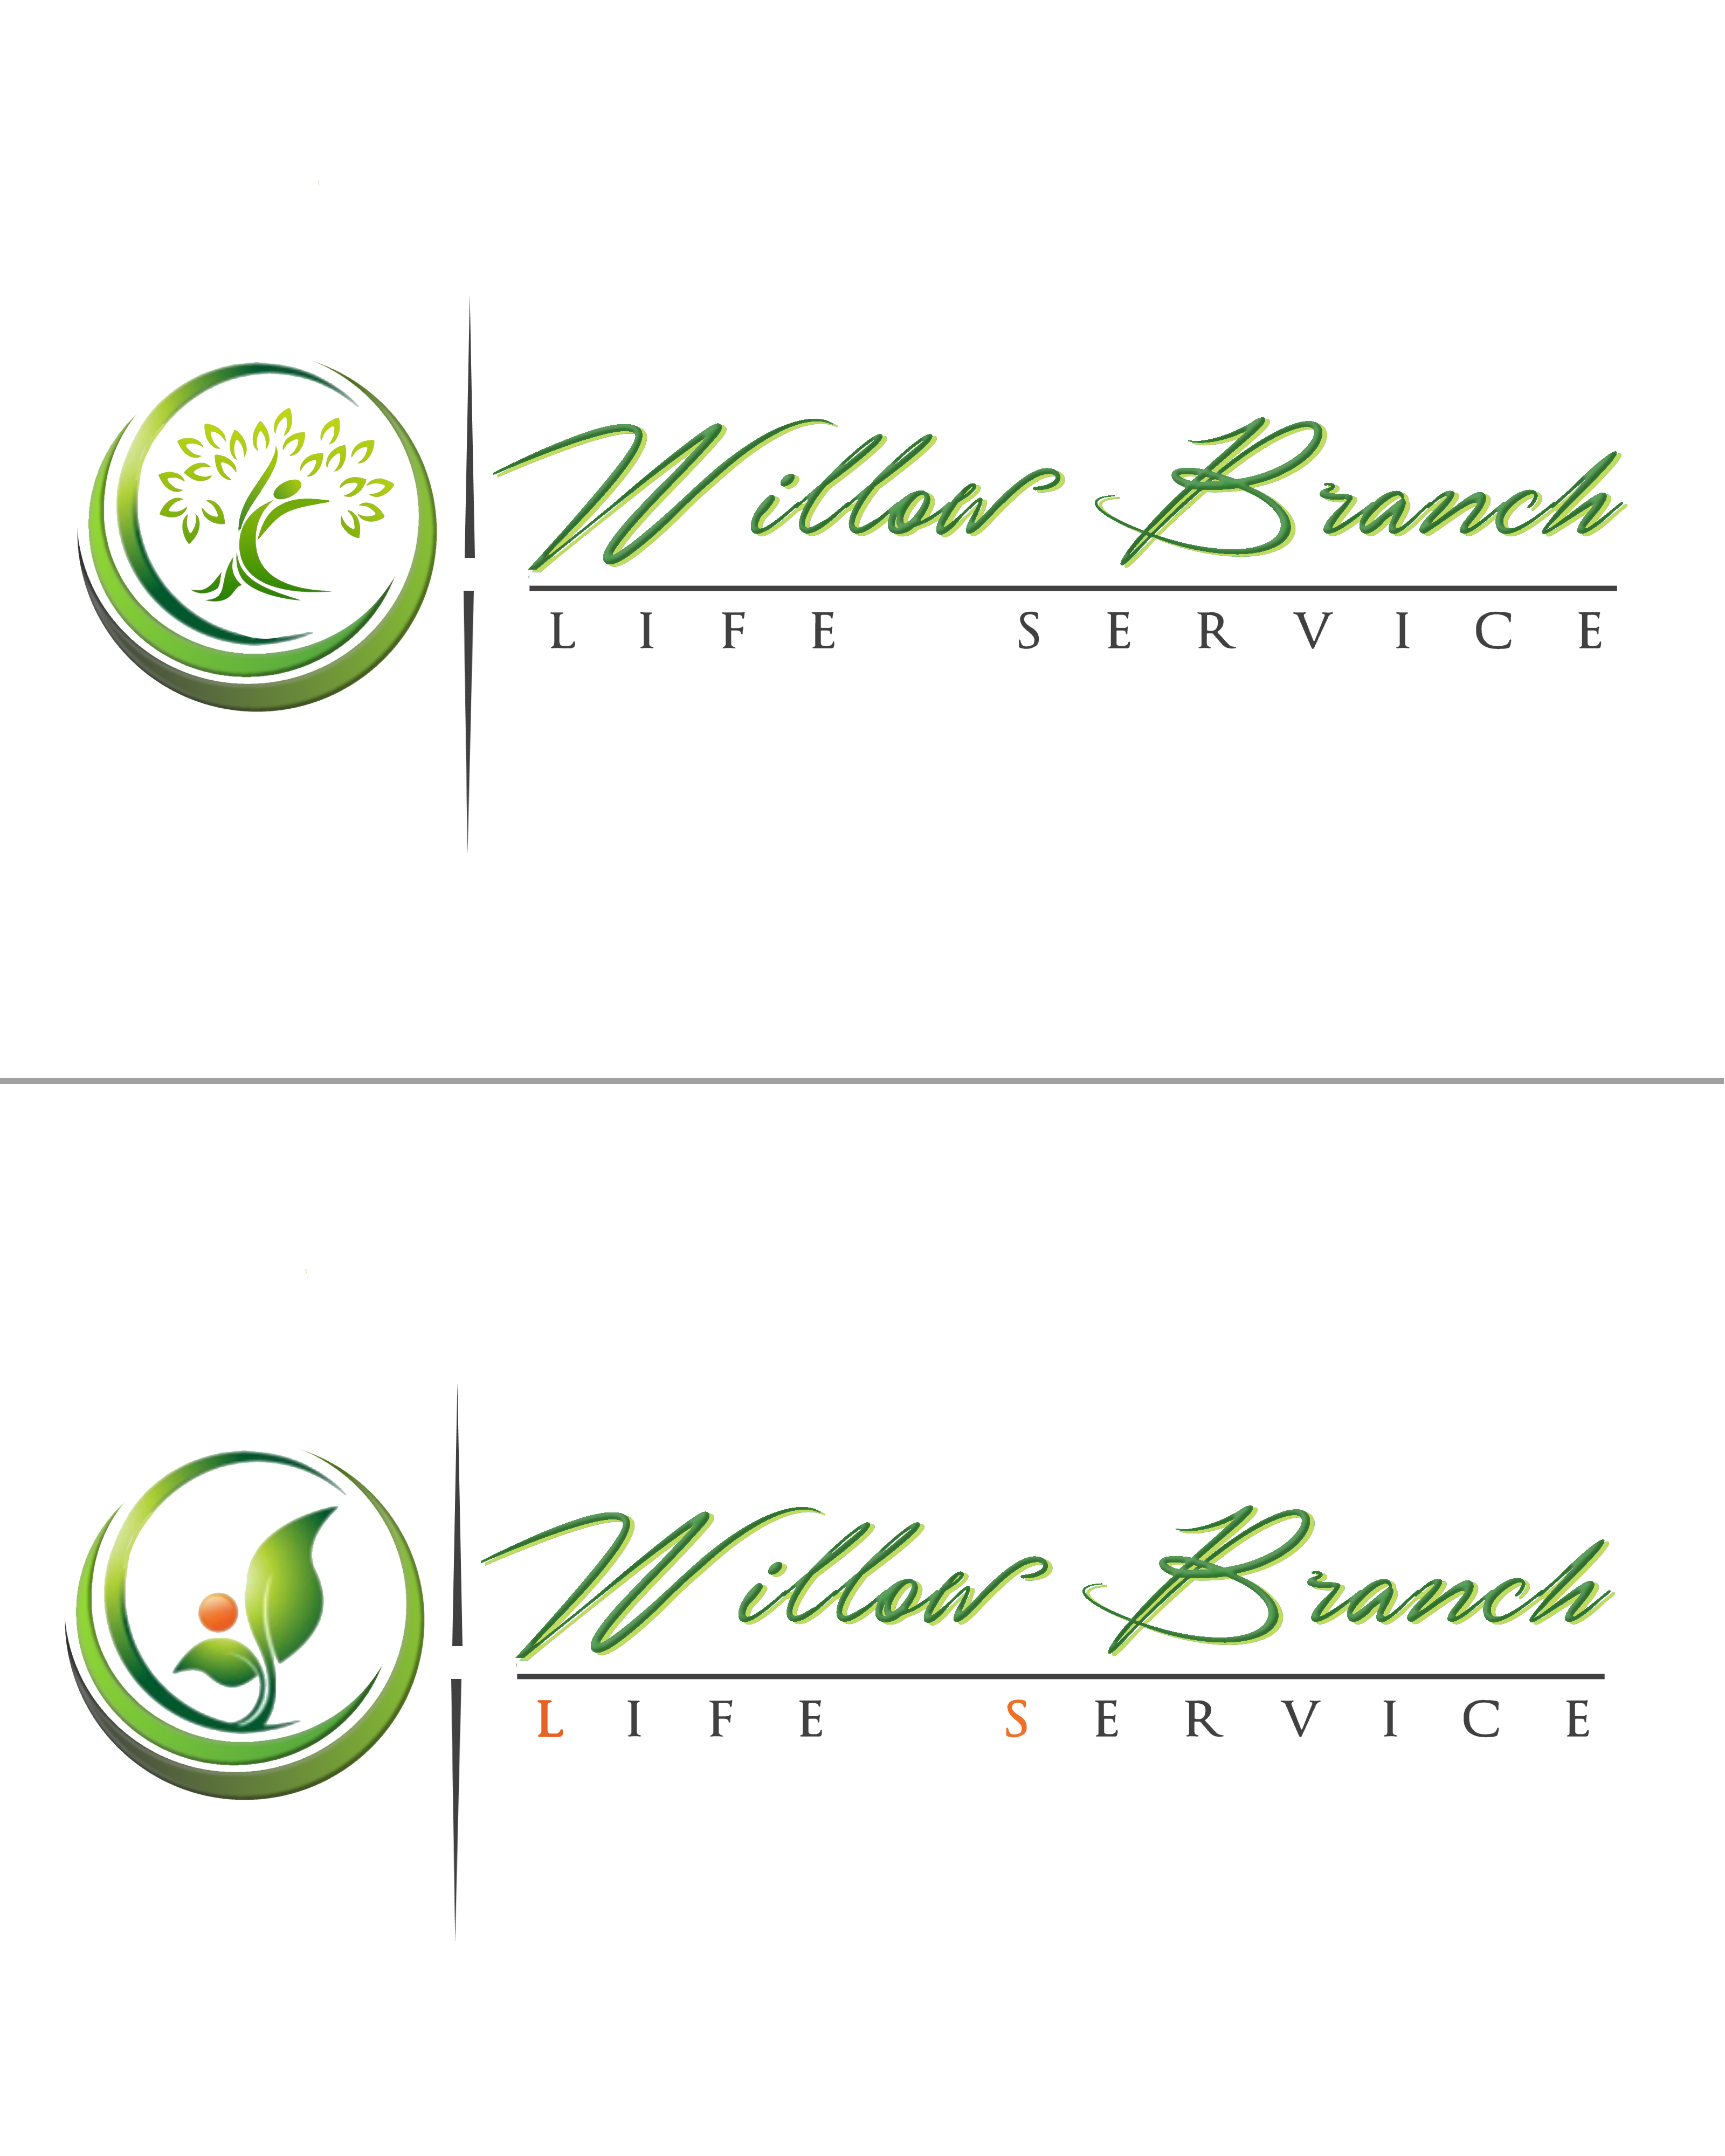 Logo Design by Roberto Bassi - Entry No. 278 in the Logo Design Contest Artistic Logo Design for Willow Branch Life Service.